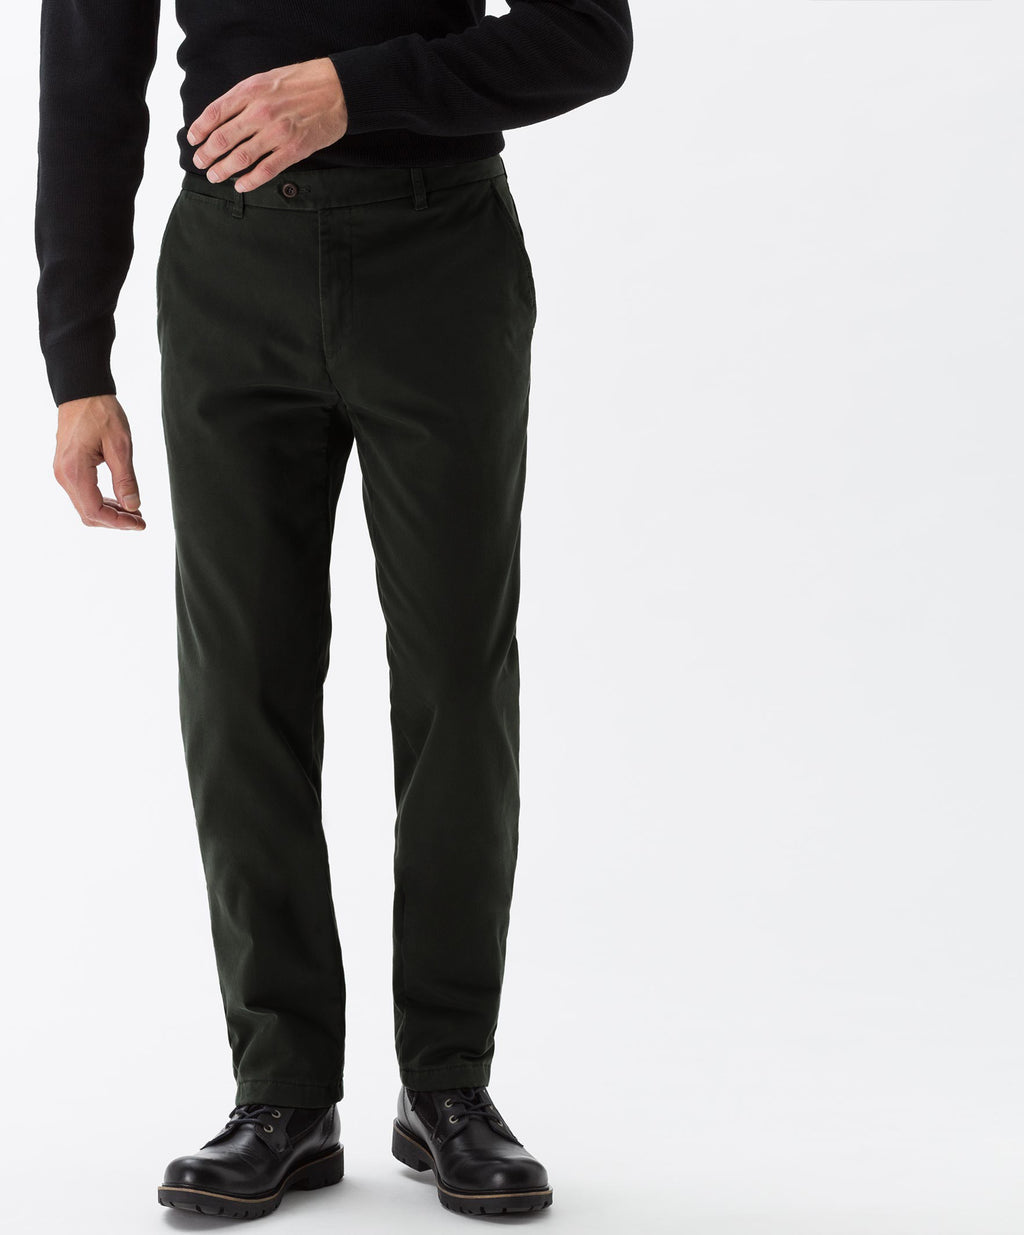 """Rene"" • Sludge • Stretch Chinos • Slim Fit • Cashmere"